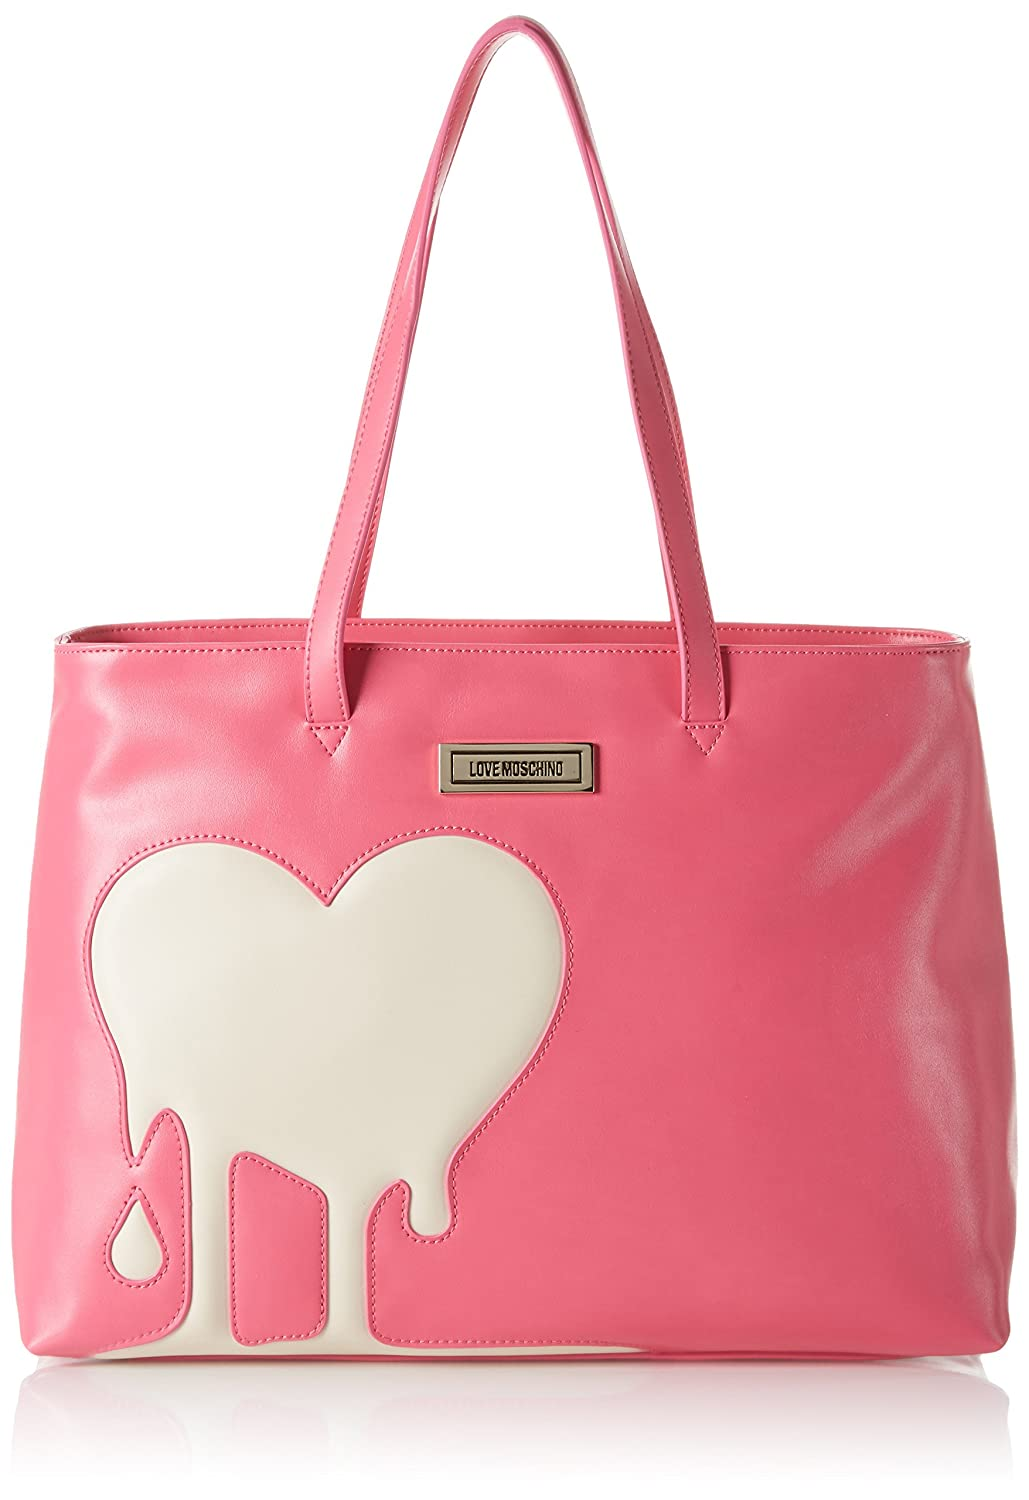 Love Moschino Women's JC4097 Tote, Multicolor (Pink/Ivory), 11x30x45 cm (B x H x T)